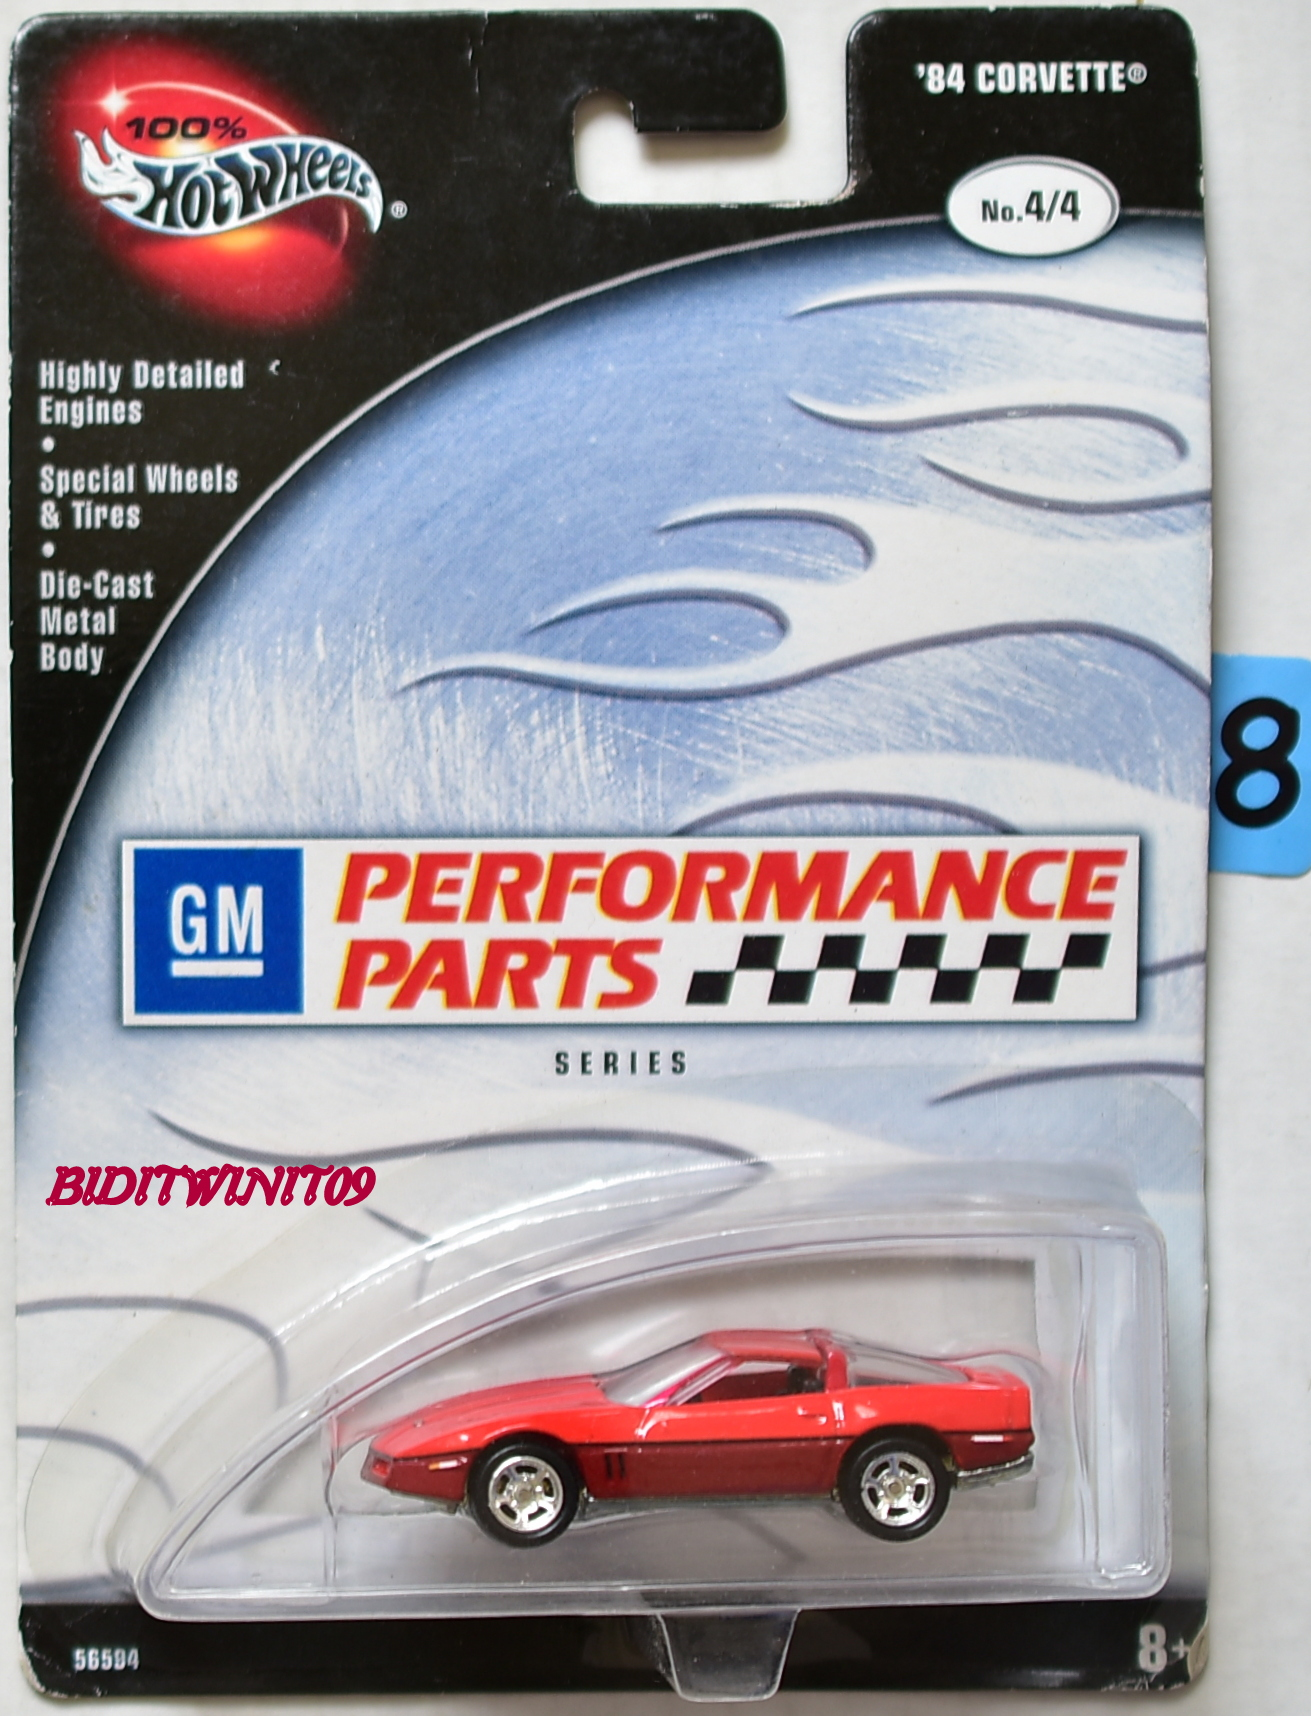 100% HOT WHEELS PERFORMANCE PARTS SERIES '84 CORVETTE #4/4 RED E+